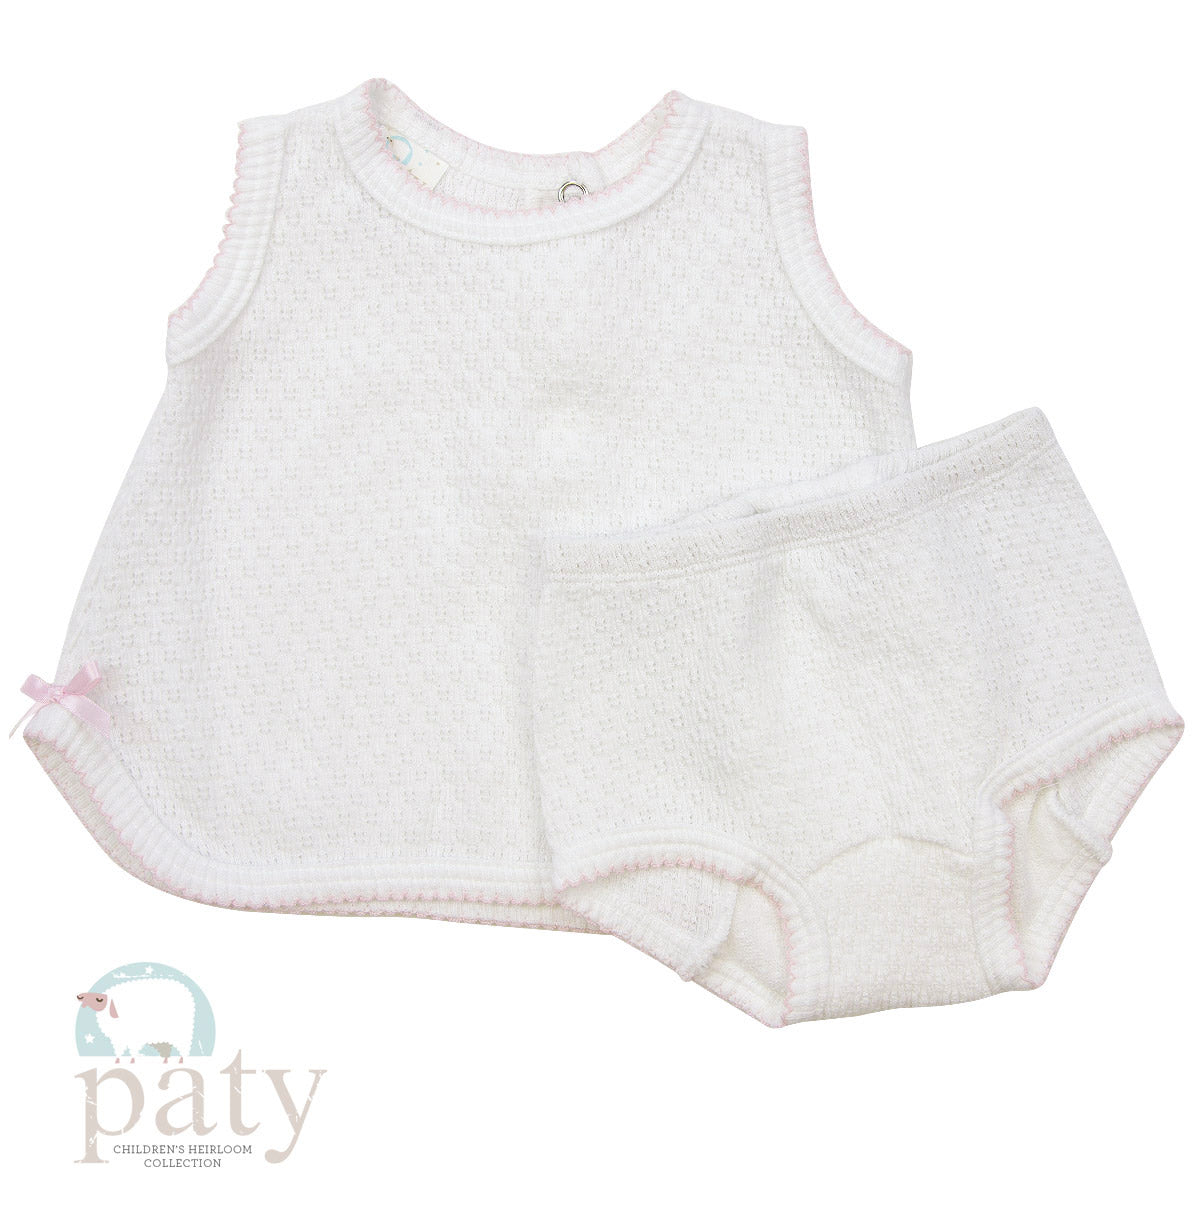 2PC SET, SLEEVELESS TOP W/ DIAPER COVER #136